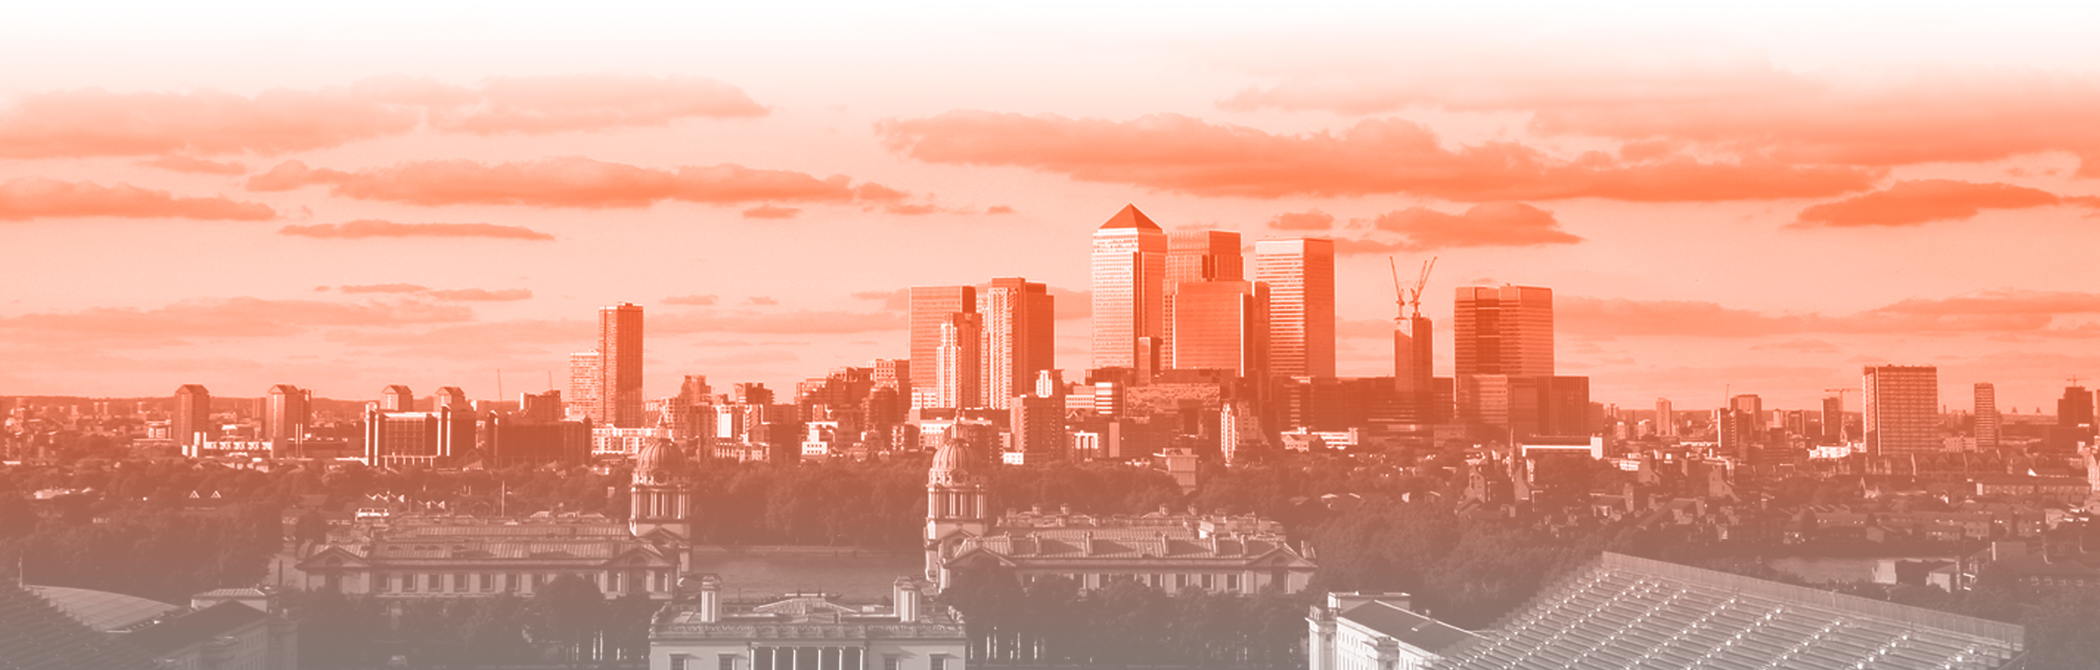 A skyline image of London